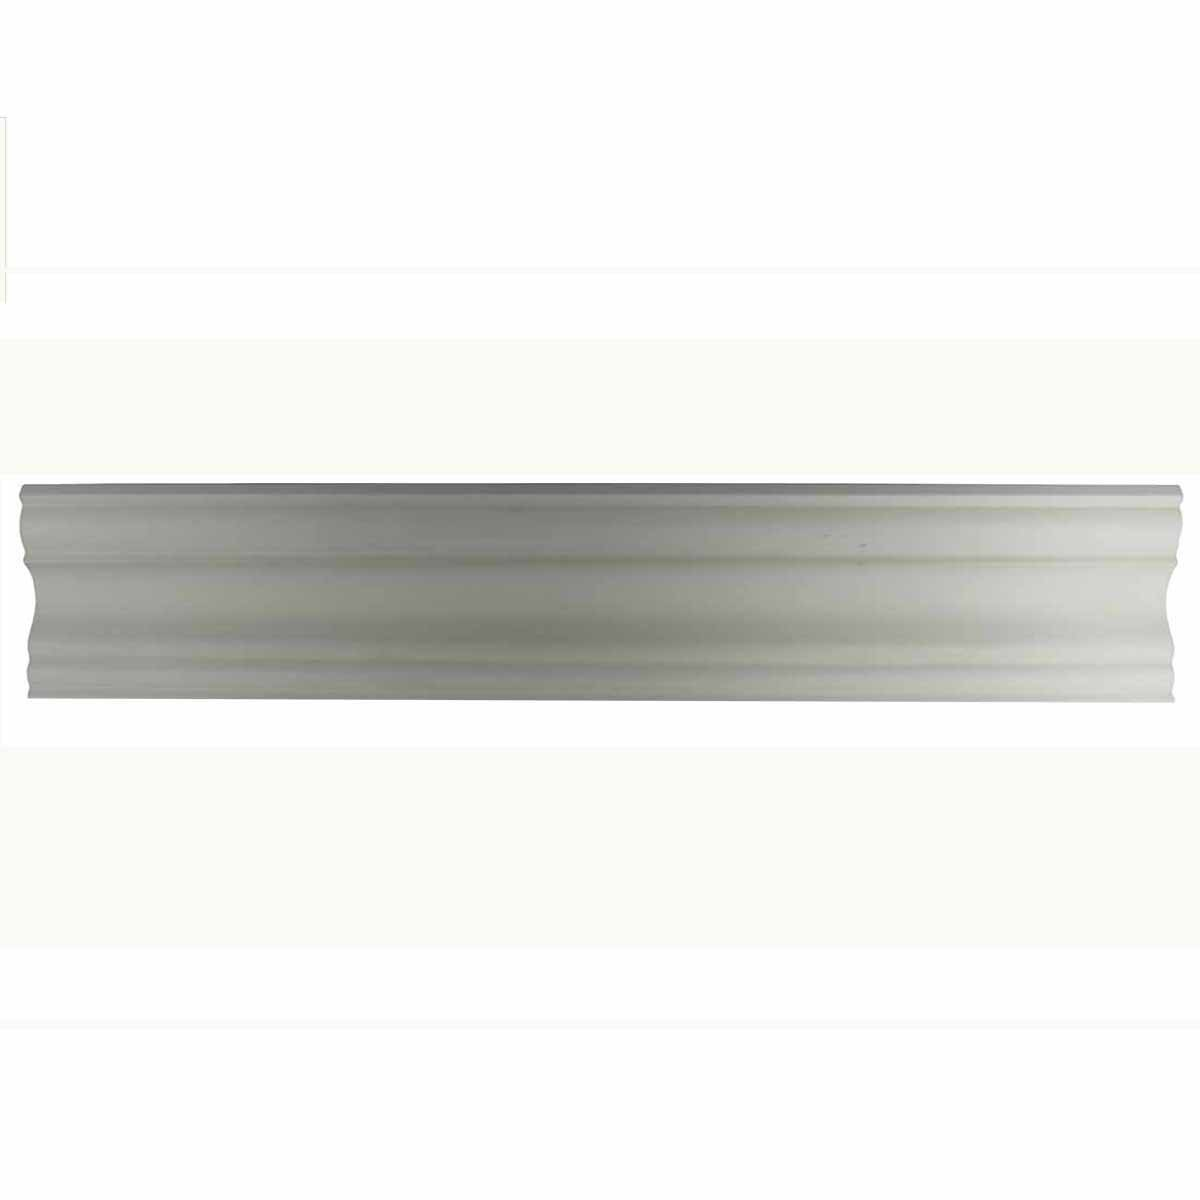 Cornice White Urethane Sample of 11484 23.5 Long Cornice Cornice Moulding Cornice Molding